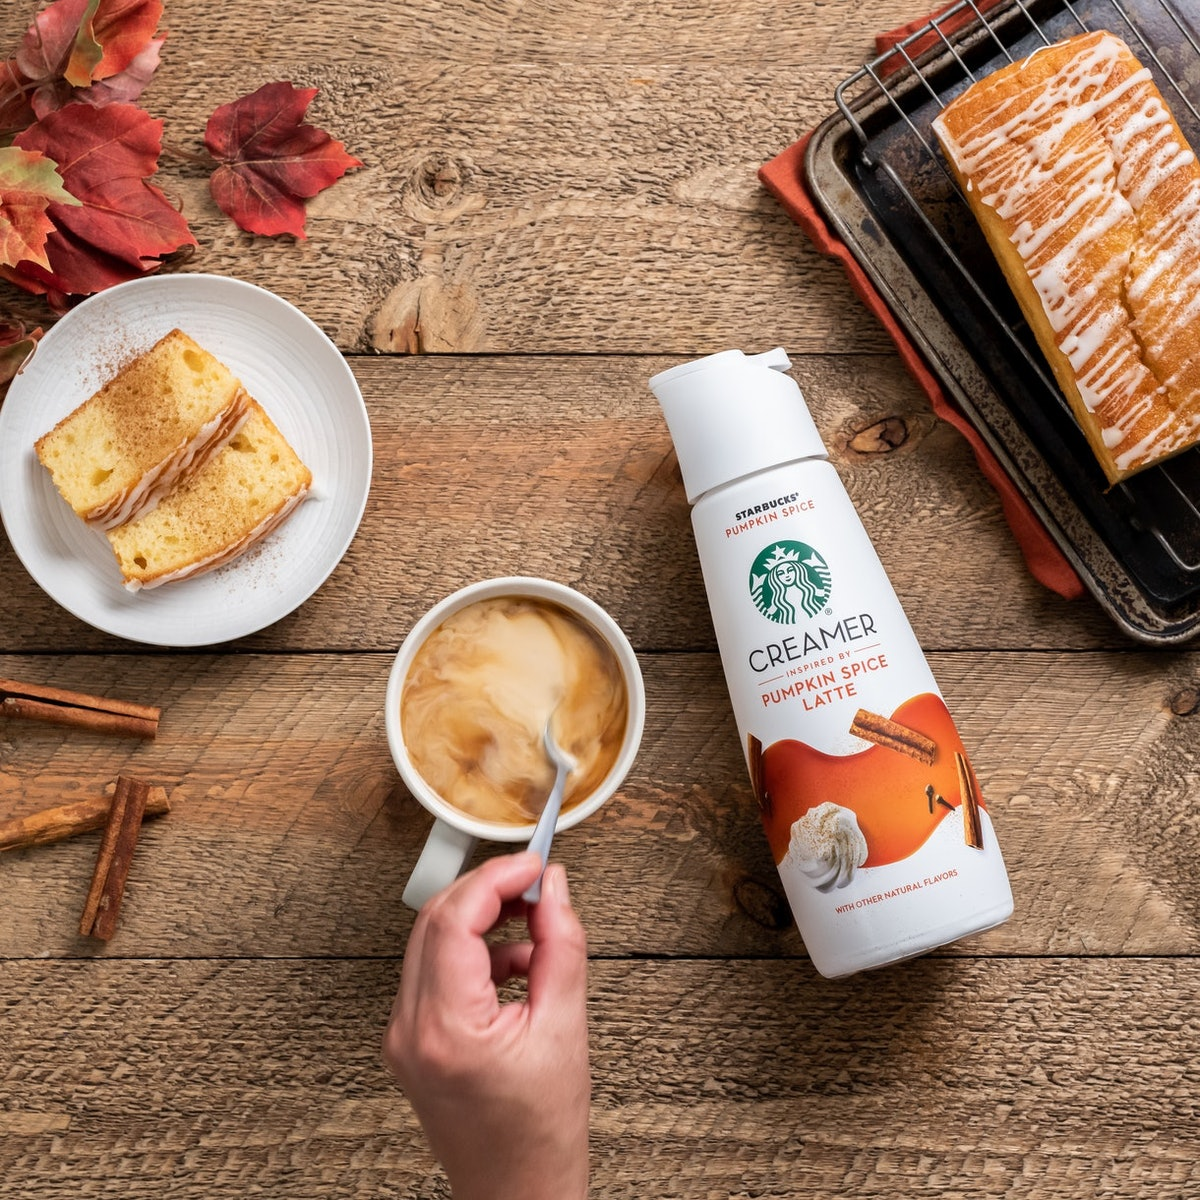 Starbucks' at-home fall 2020 products include the return of its PSL coffee creamer.